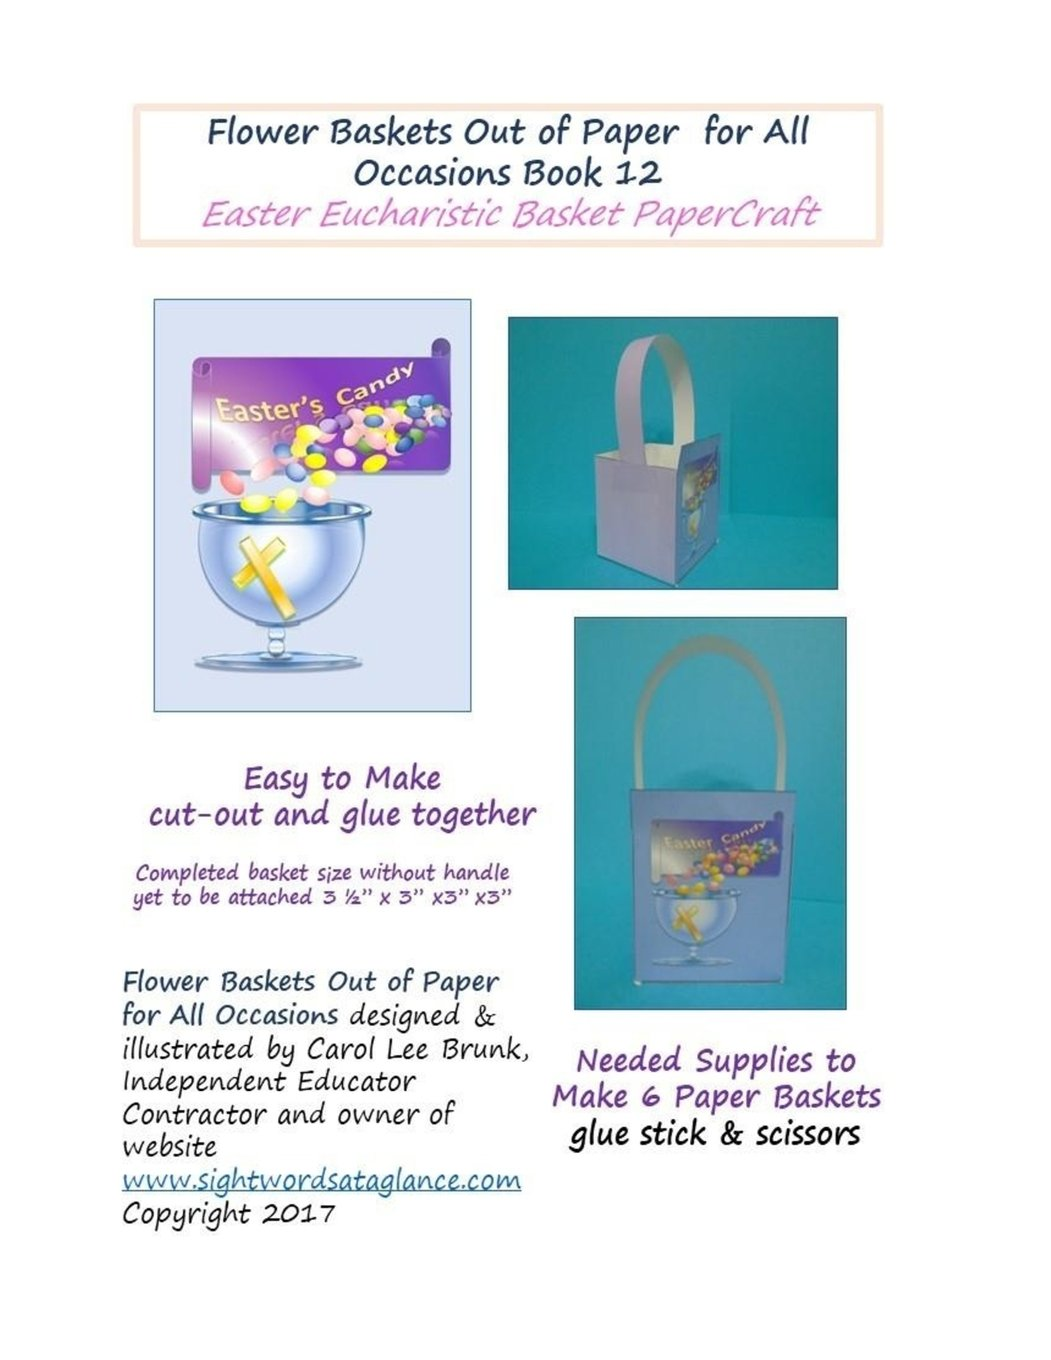 Flower Baskets Out of Paper for All Occasions Book 12: Easter Eucharistic Basket PaperCraft (Volume 12)